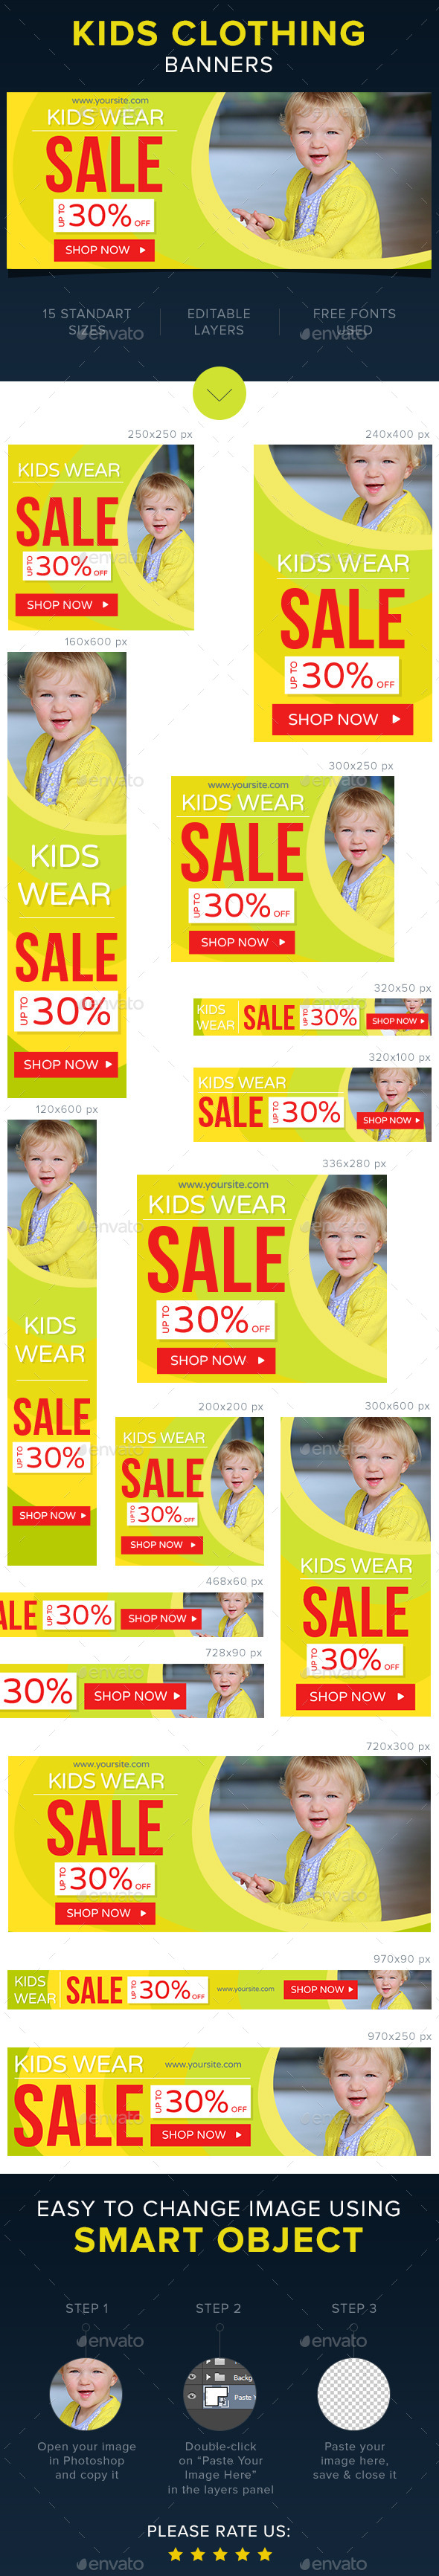 Kids Clothing Banners - Banners & Ads Web Elements